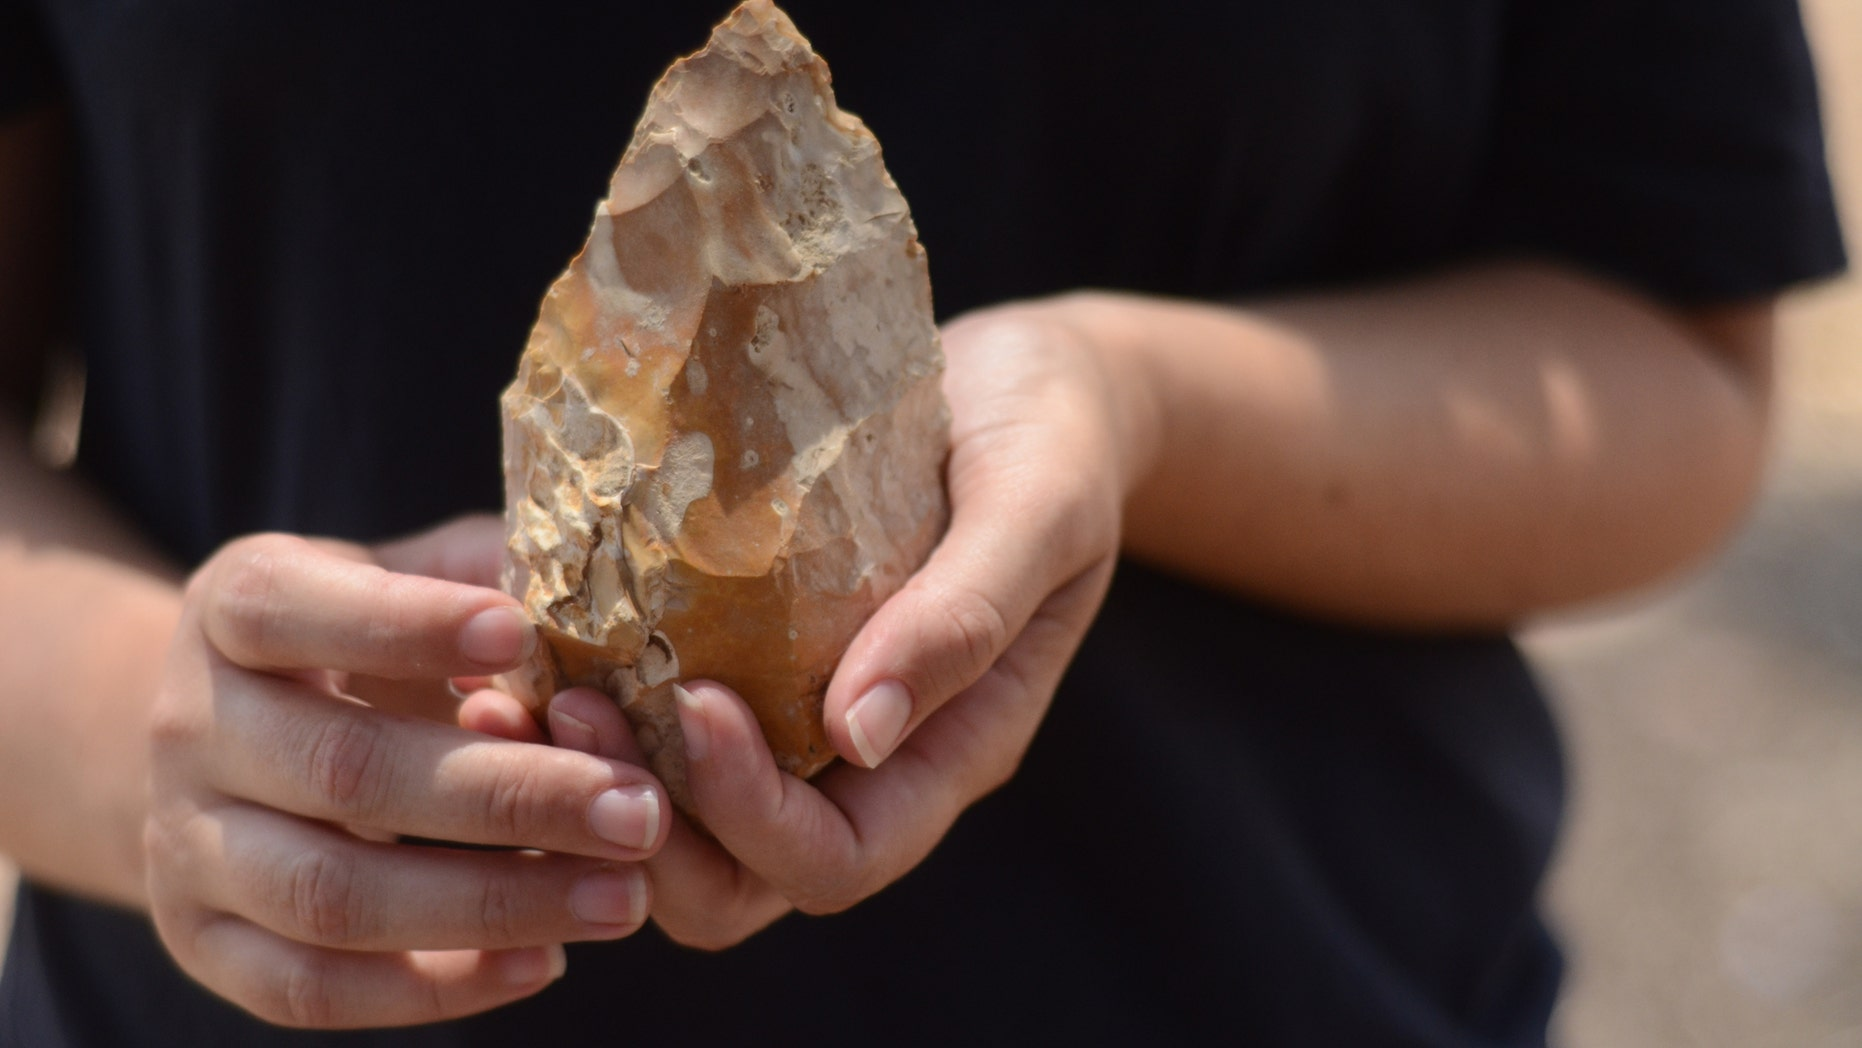 Hundreds of hand axes were uncovered in the excavation. (Samuel Magal, Courtesy of the Israel Antiquities Authority)